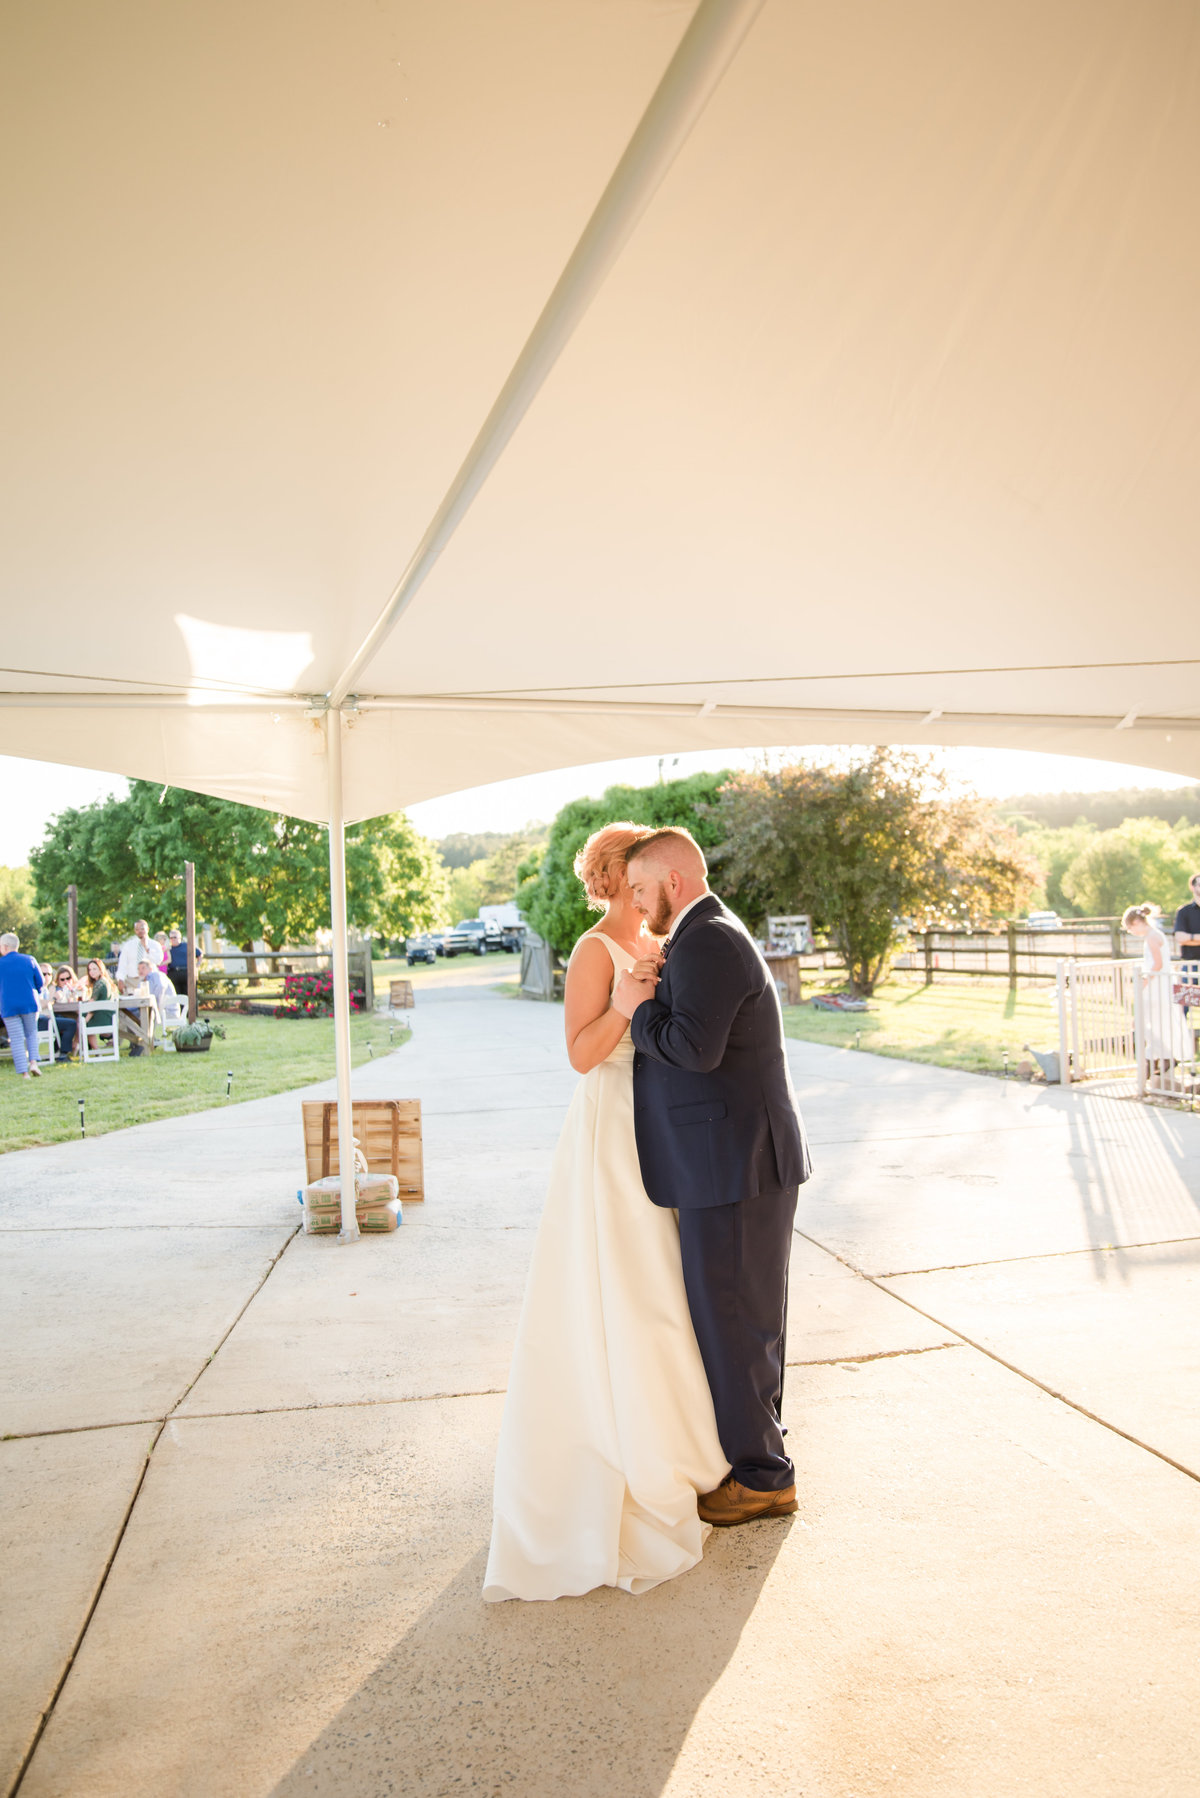 DGP_Cranford-Outen-Wedding_SneakPeek (61 of 90)